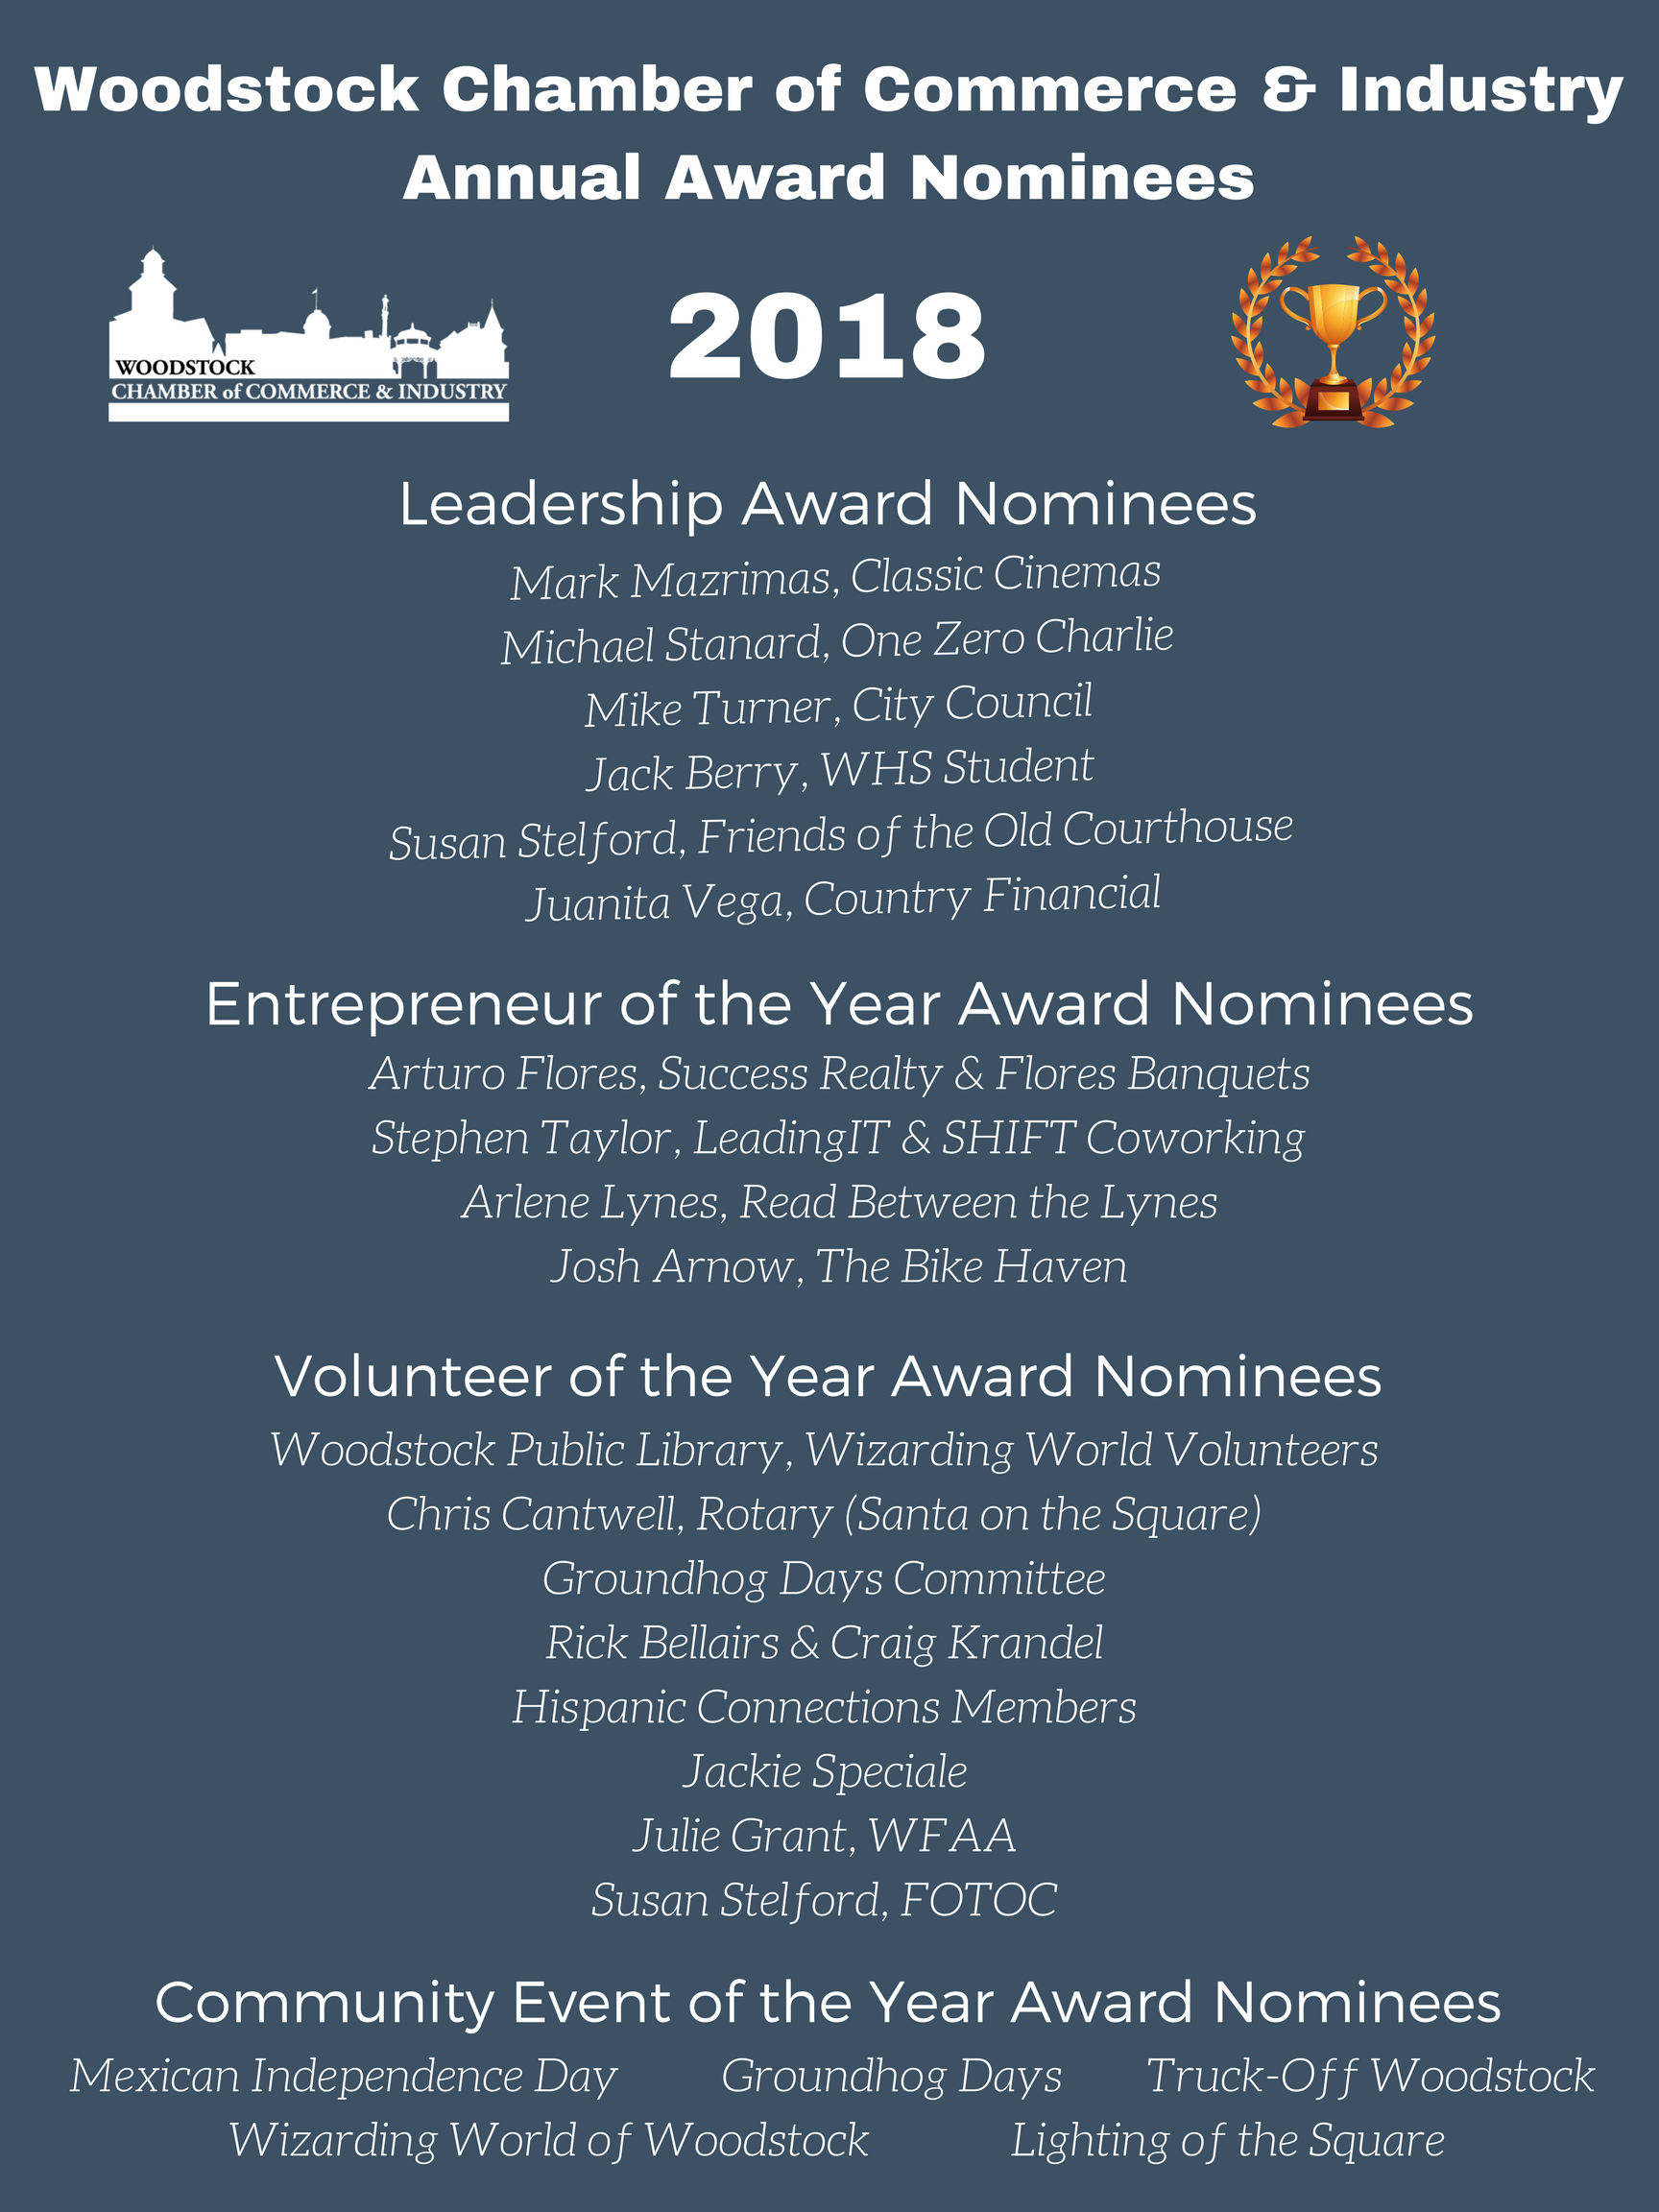 Woodstock-Chamber-of-Commerce-and-Industry2018-Award-Nominees-(1).png